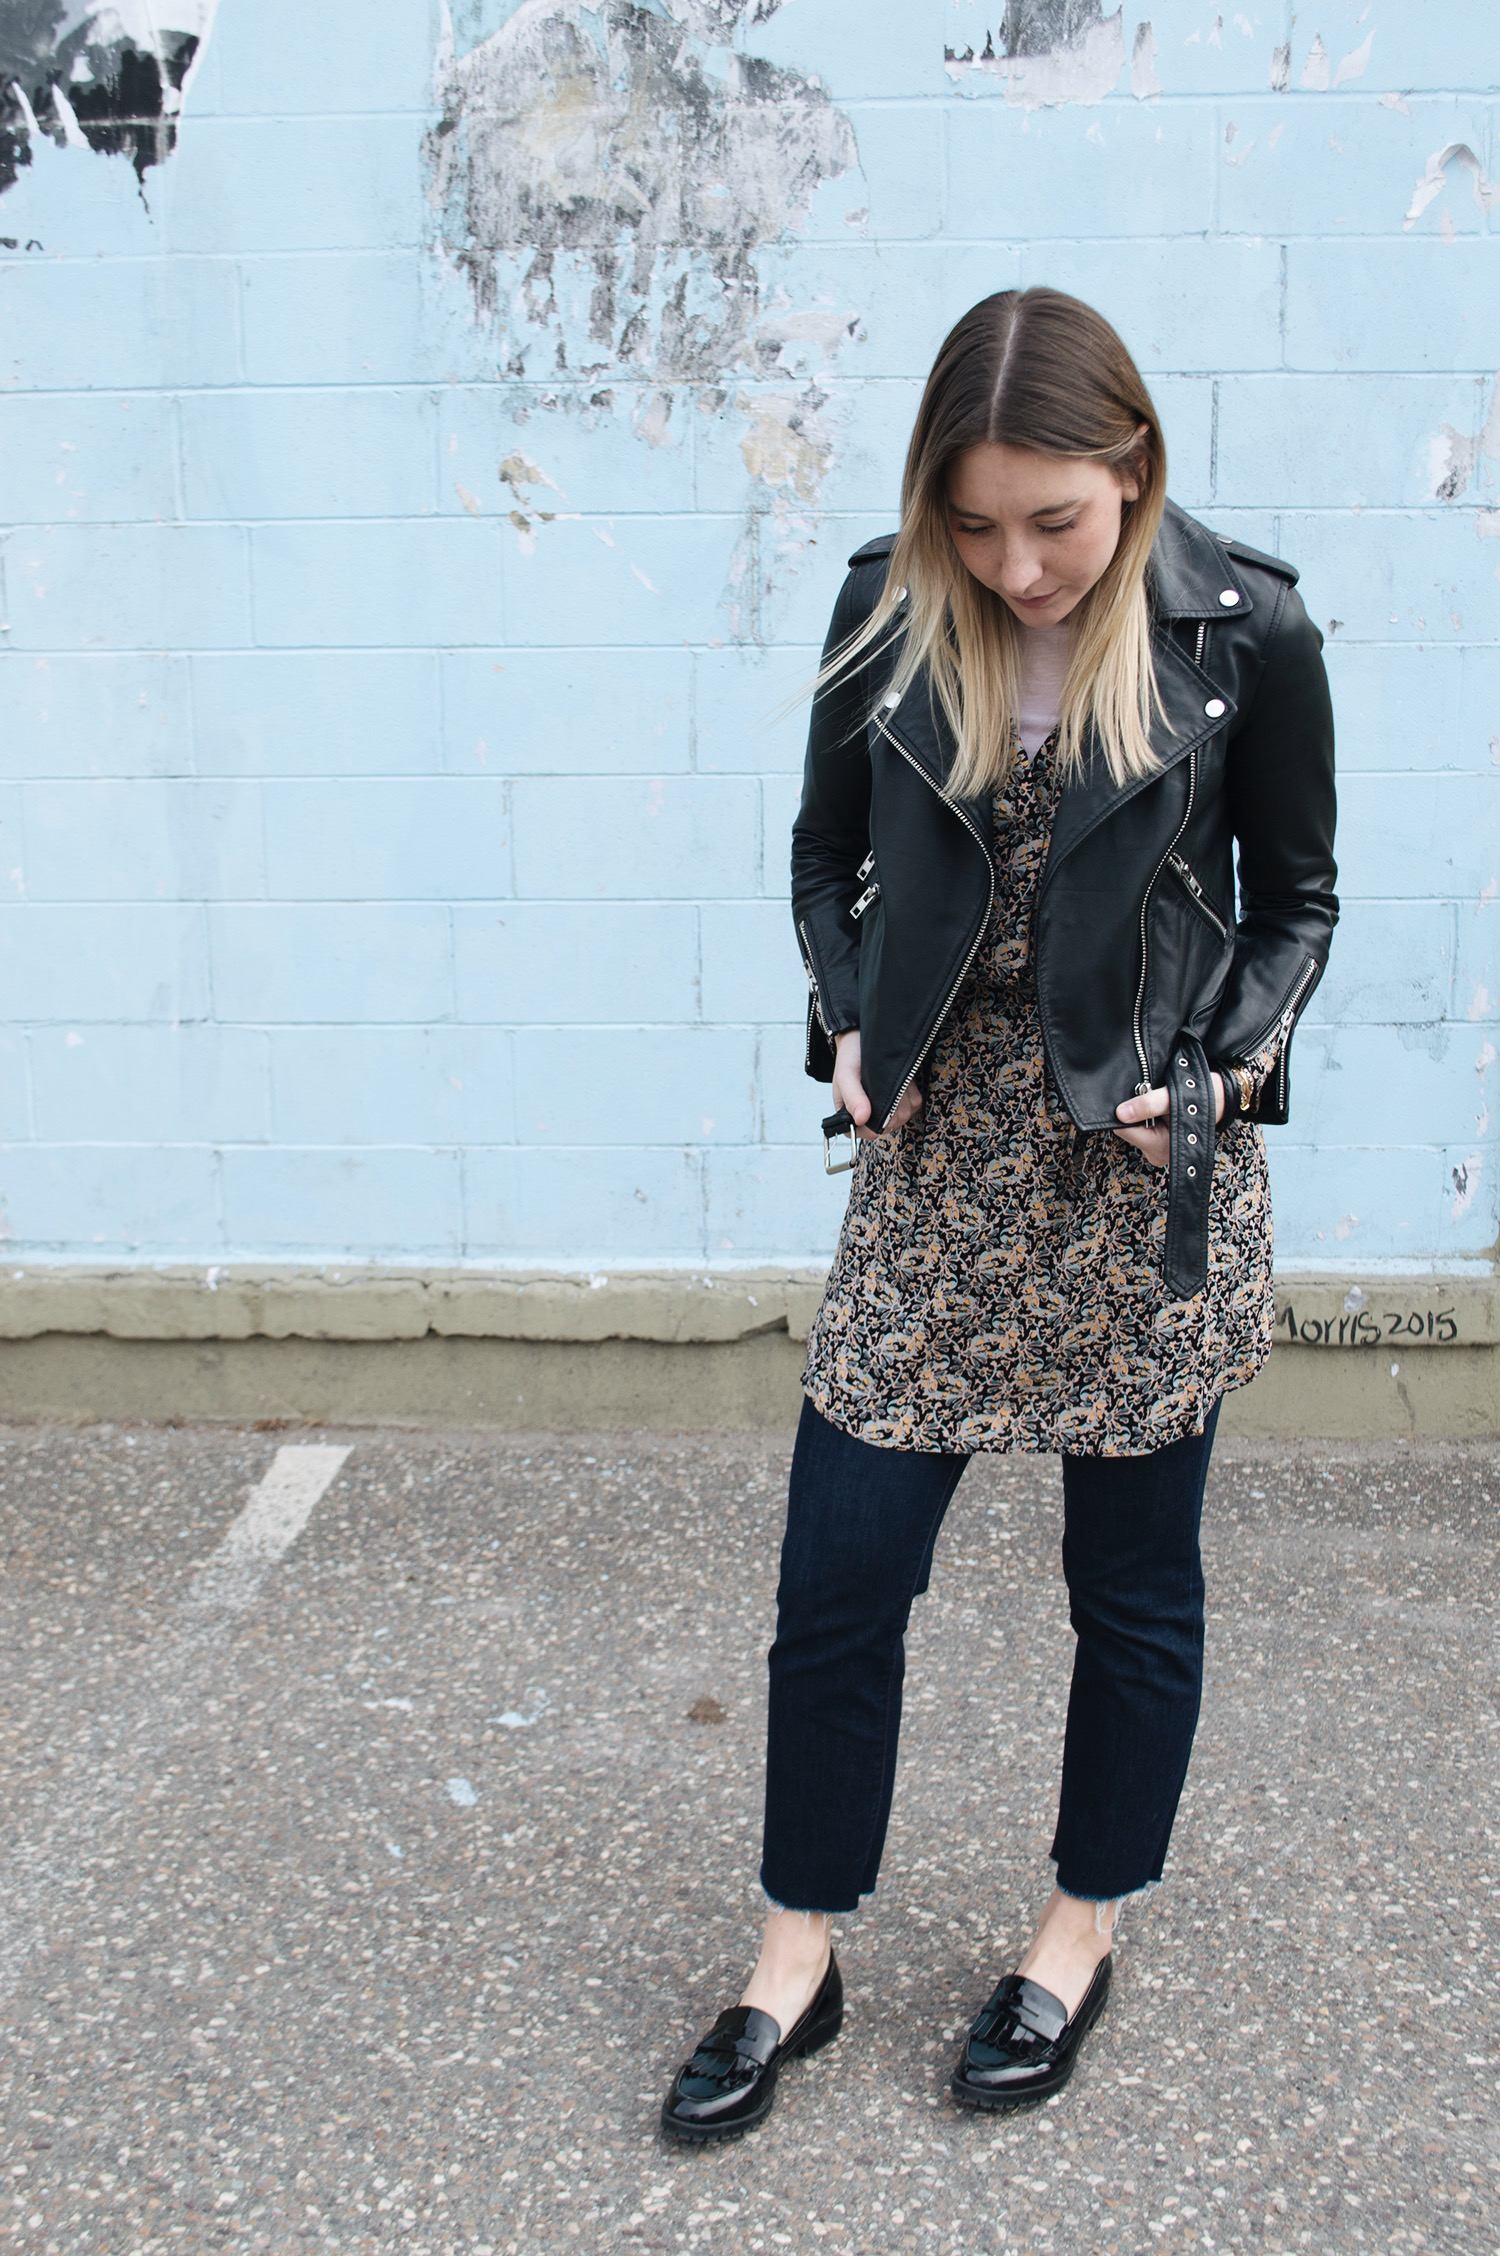 LOFT DRESS, WALTER BAKER LEATHER MOTO JACKET, J BRAND JEANS, ZARA LOAFERS